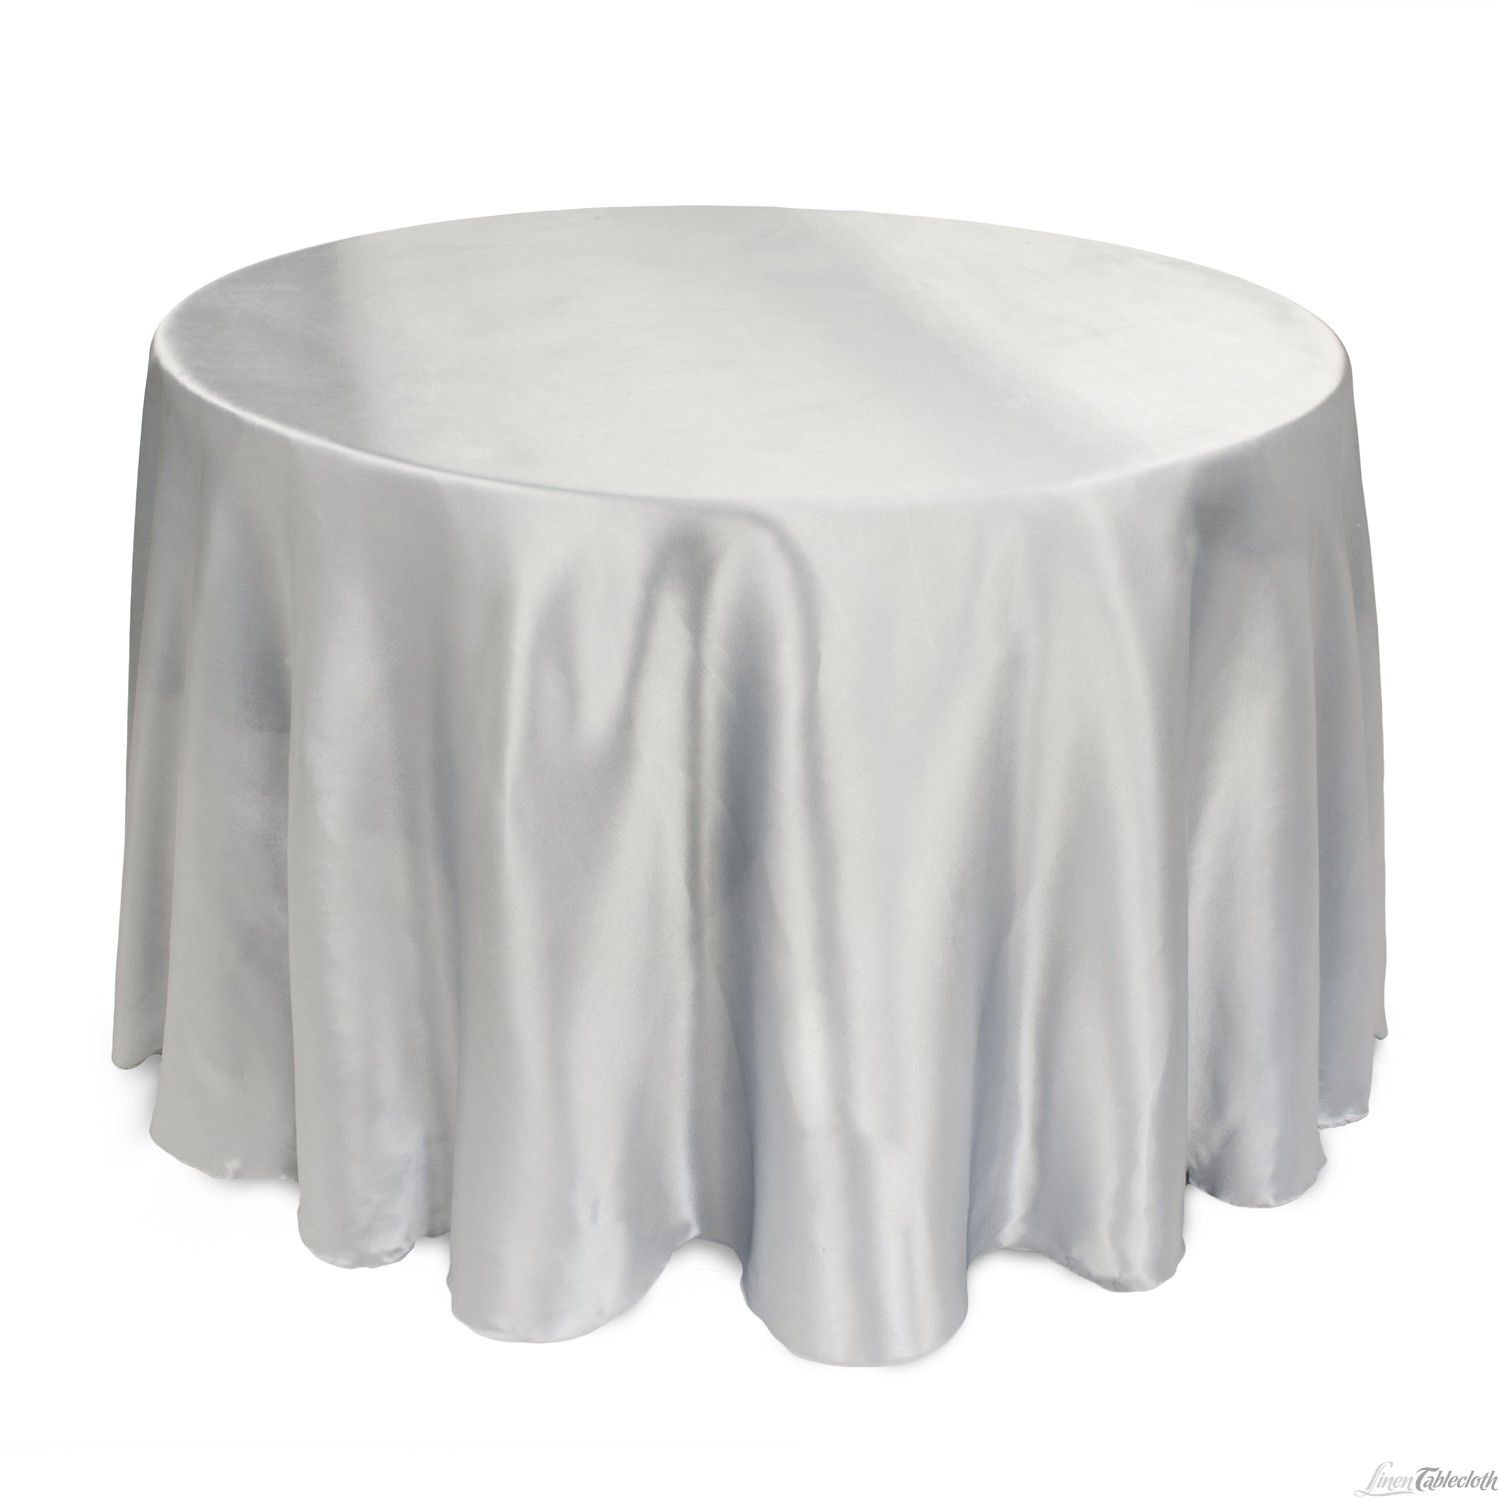 Buy 108 Inch Round Grey Satin Tablecloth For Weddings At Linentablecloth Seamless And Machine Washable Table Line White Table Cloth Table Cloth Colorful Table